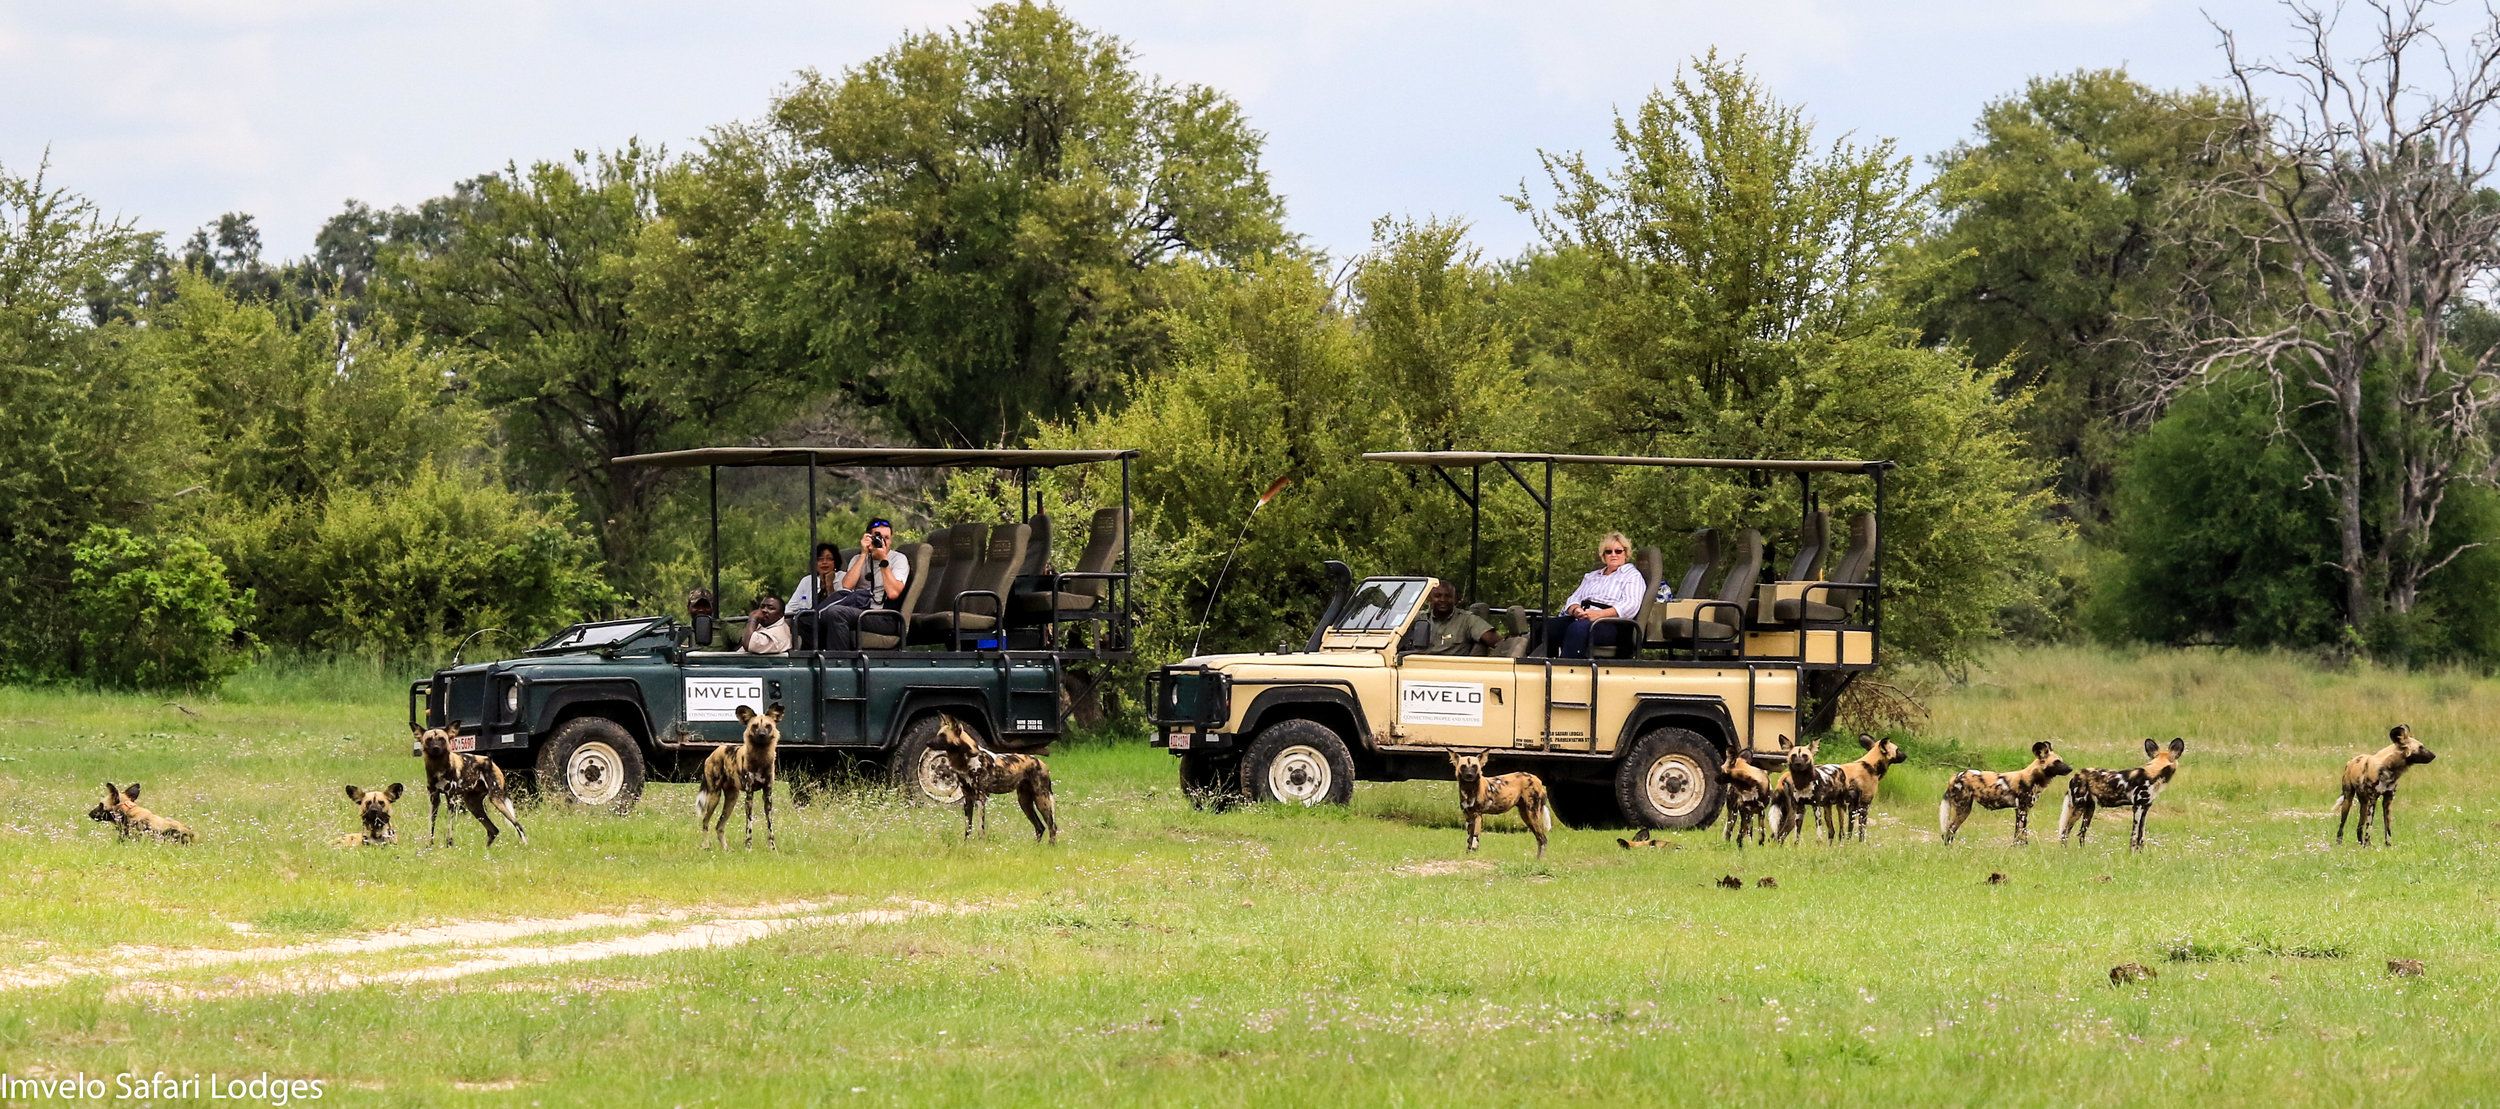 52i - Imvelo Safari Lodges - Bomani - New Years day for Cusp and her pack.jpg